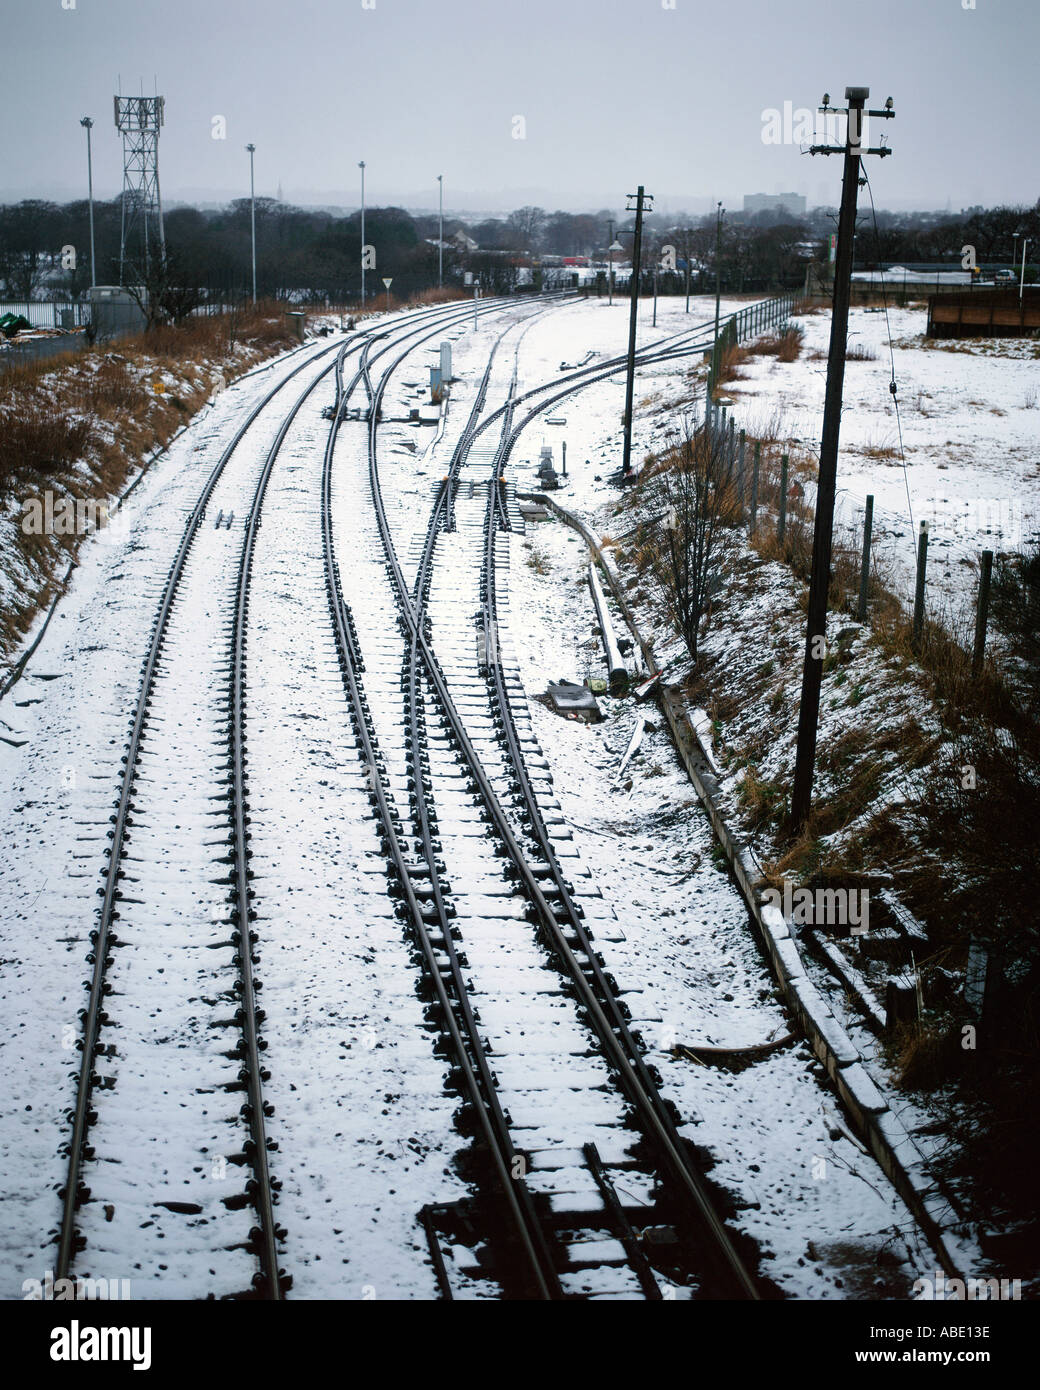 Snow on rail line - Stock Image